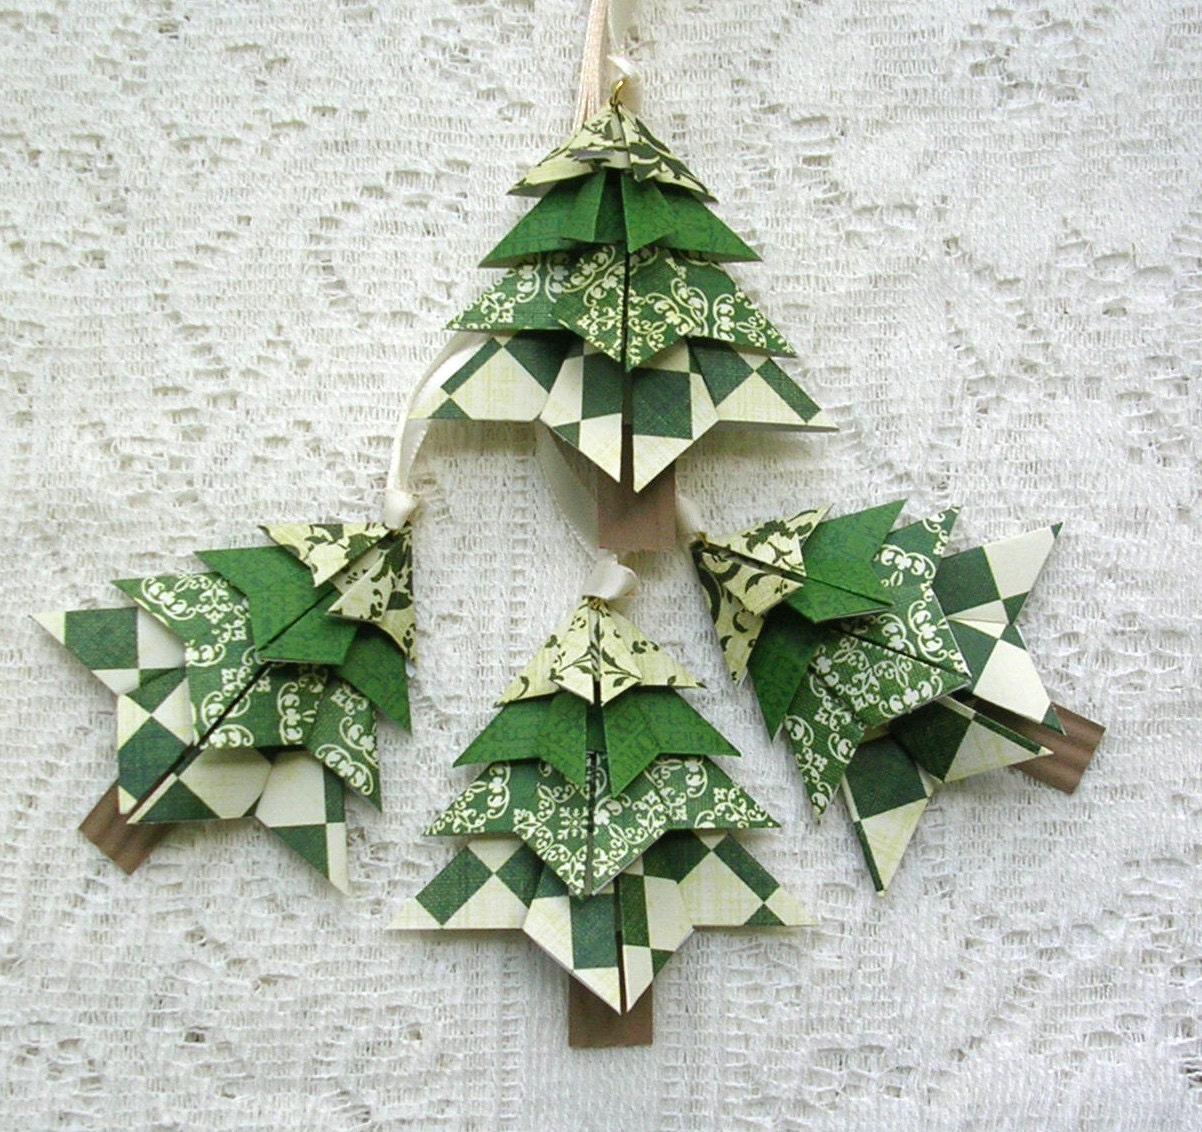 Origami Christmas Decorations: Origami Trees Christmas Tags Origami Christmas Ornaments